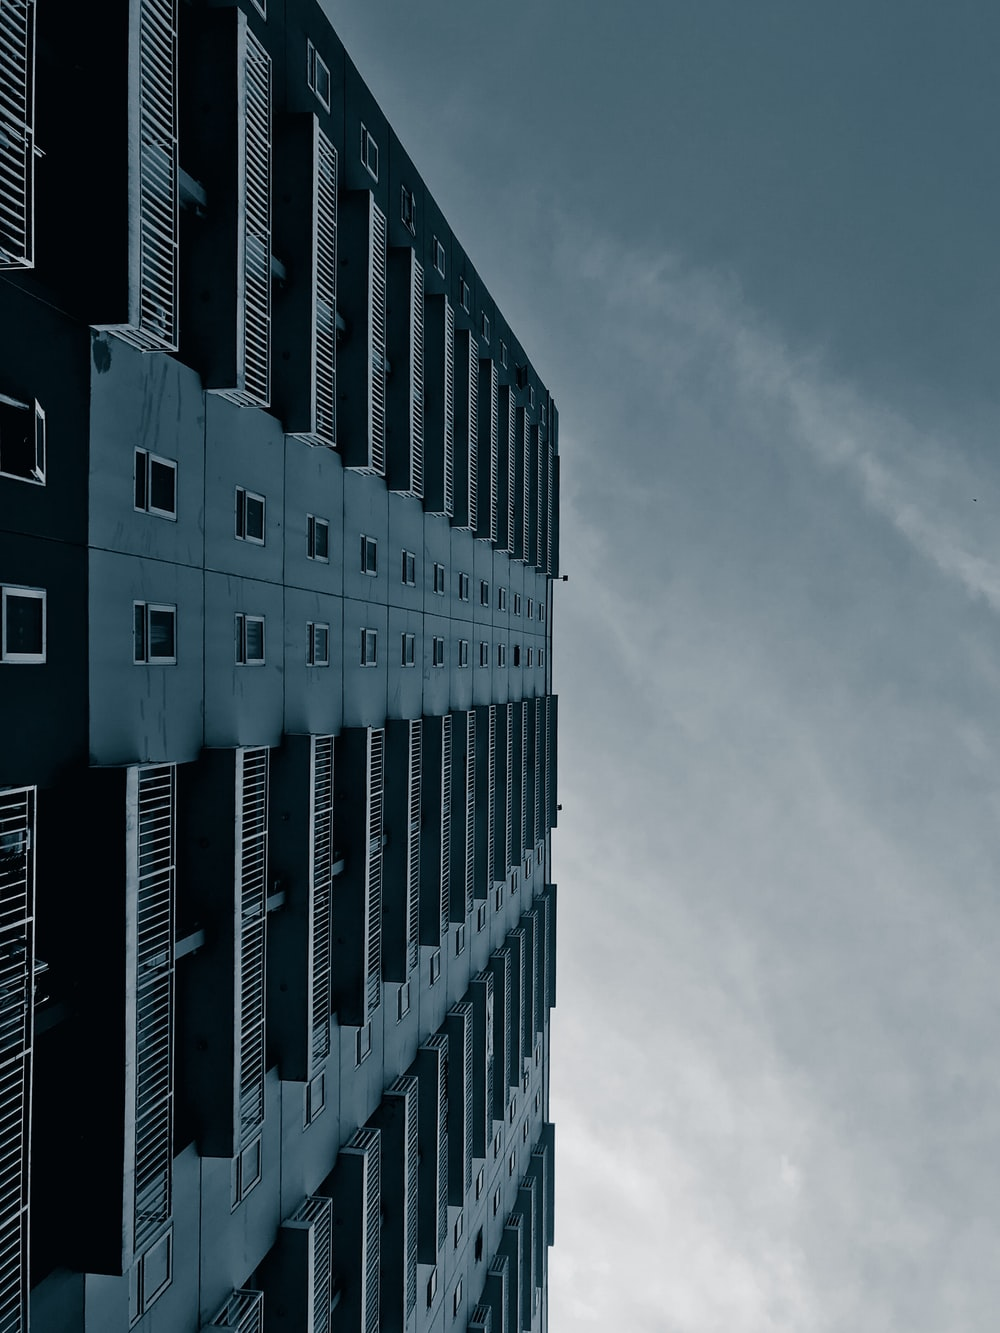 worm's eye view of a building